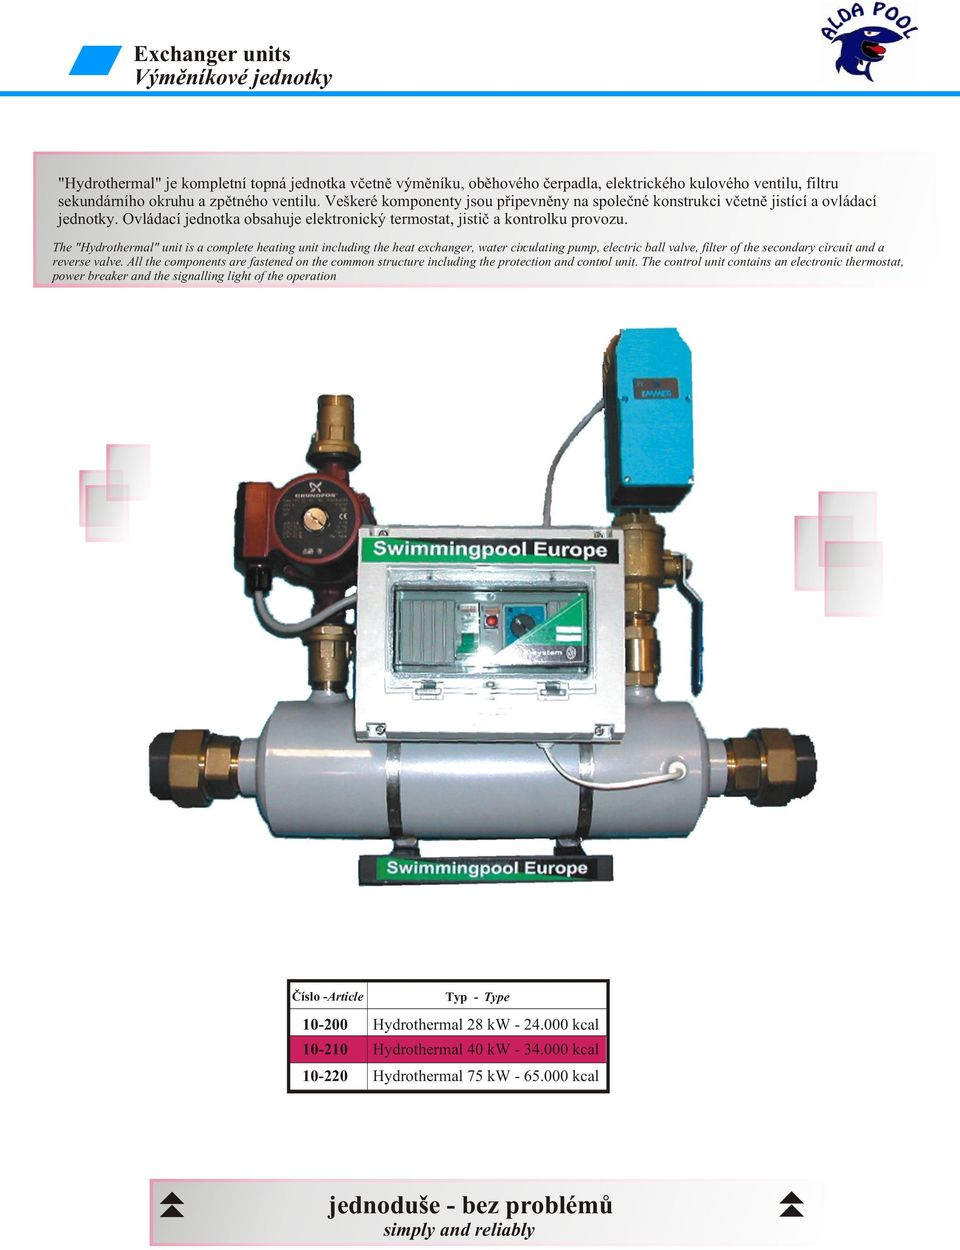 "The ""Hydrothermal"" unit is a complete heating unit including the heat exchanger, water circulating pump, electric ball valve, filter of the secondary circuit and a reverse valve."